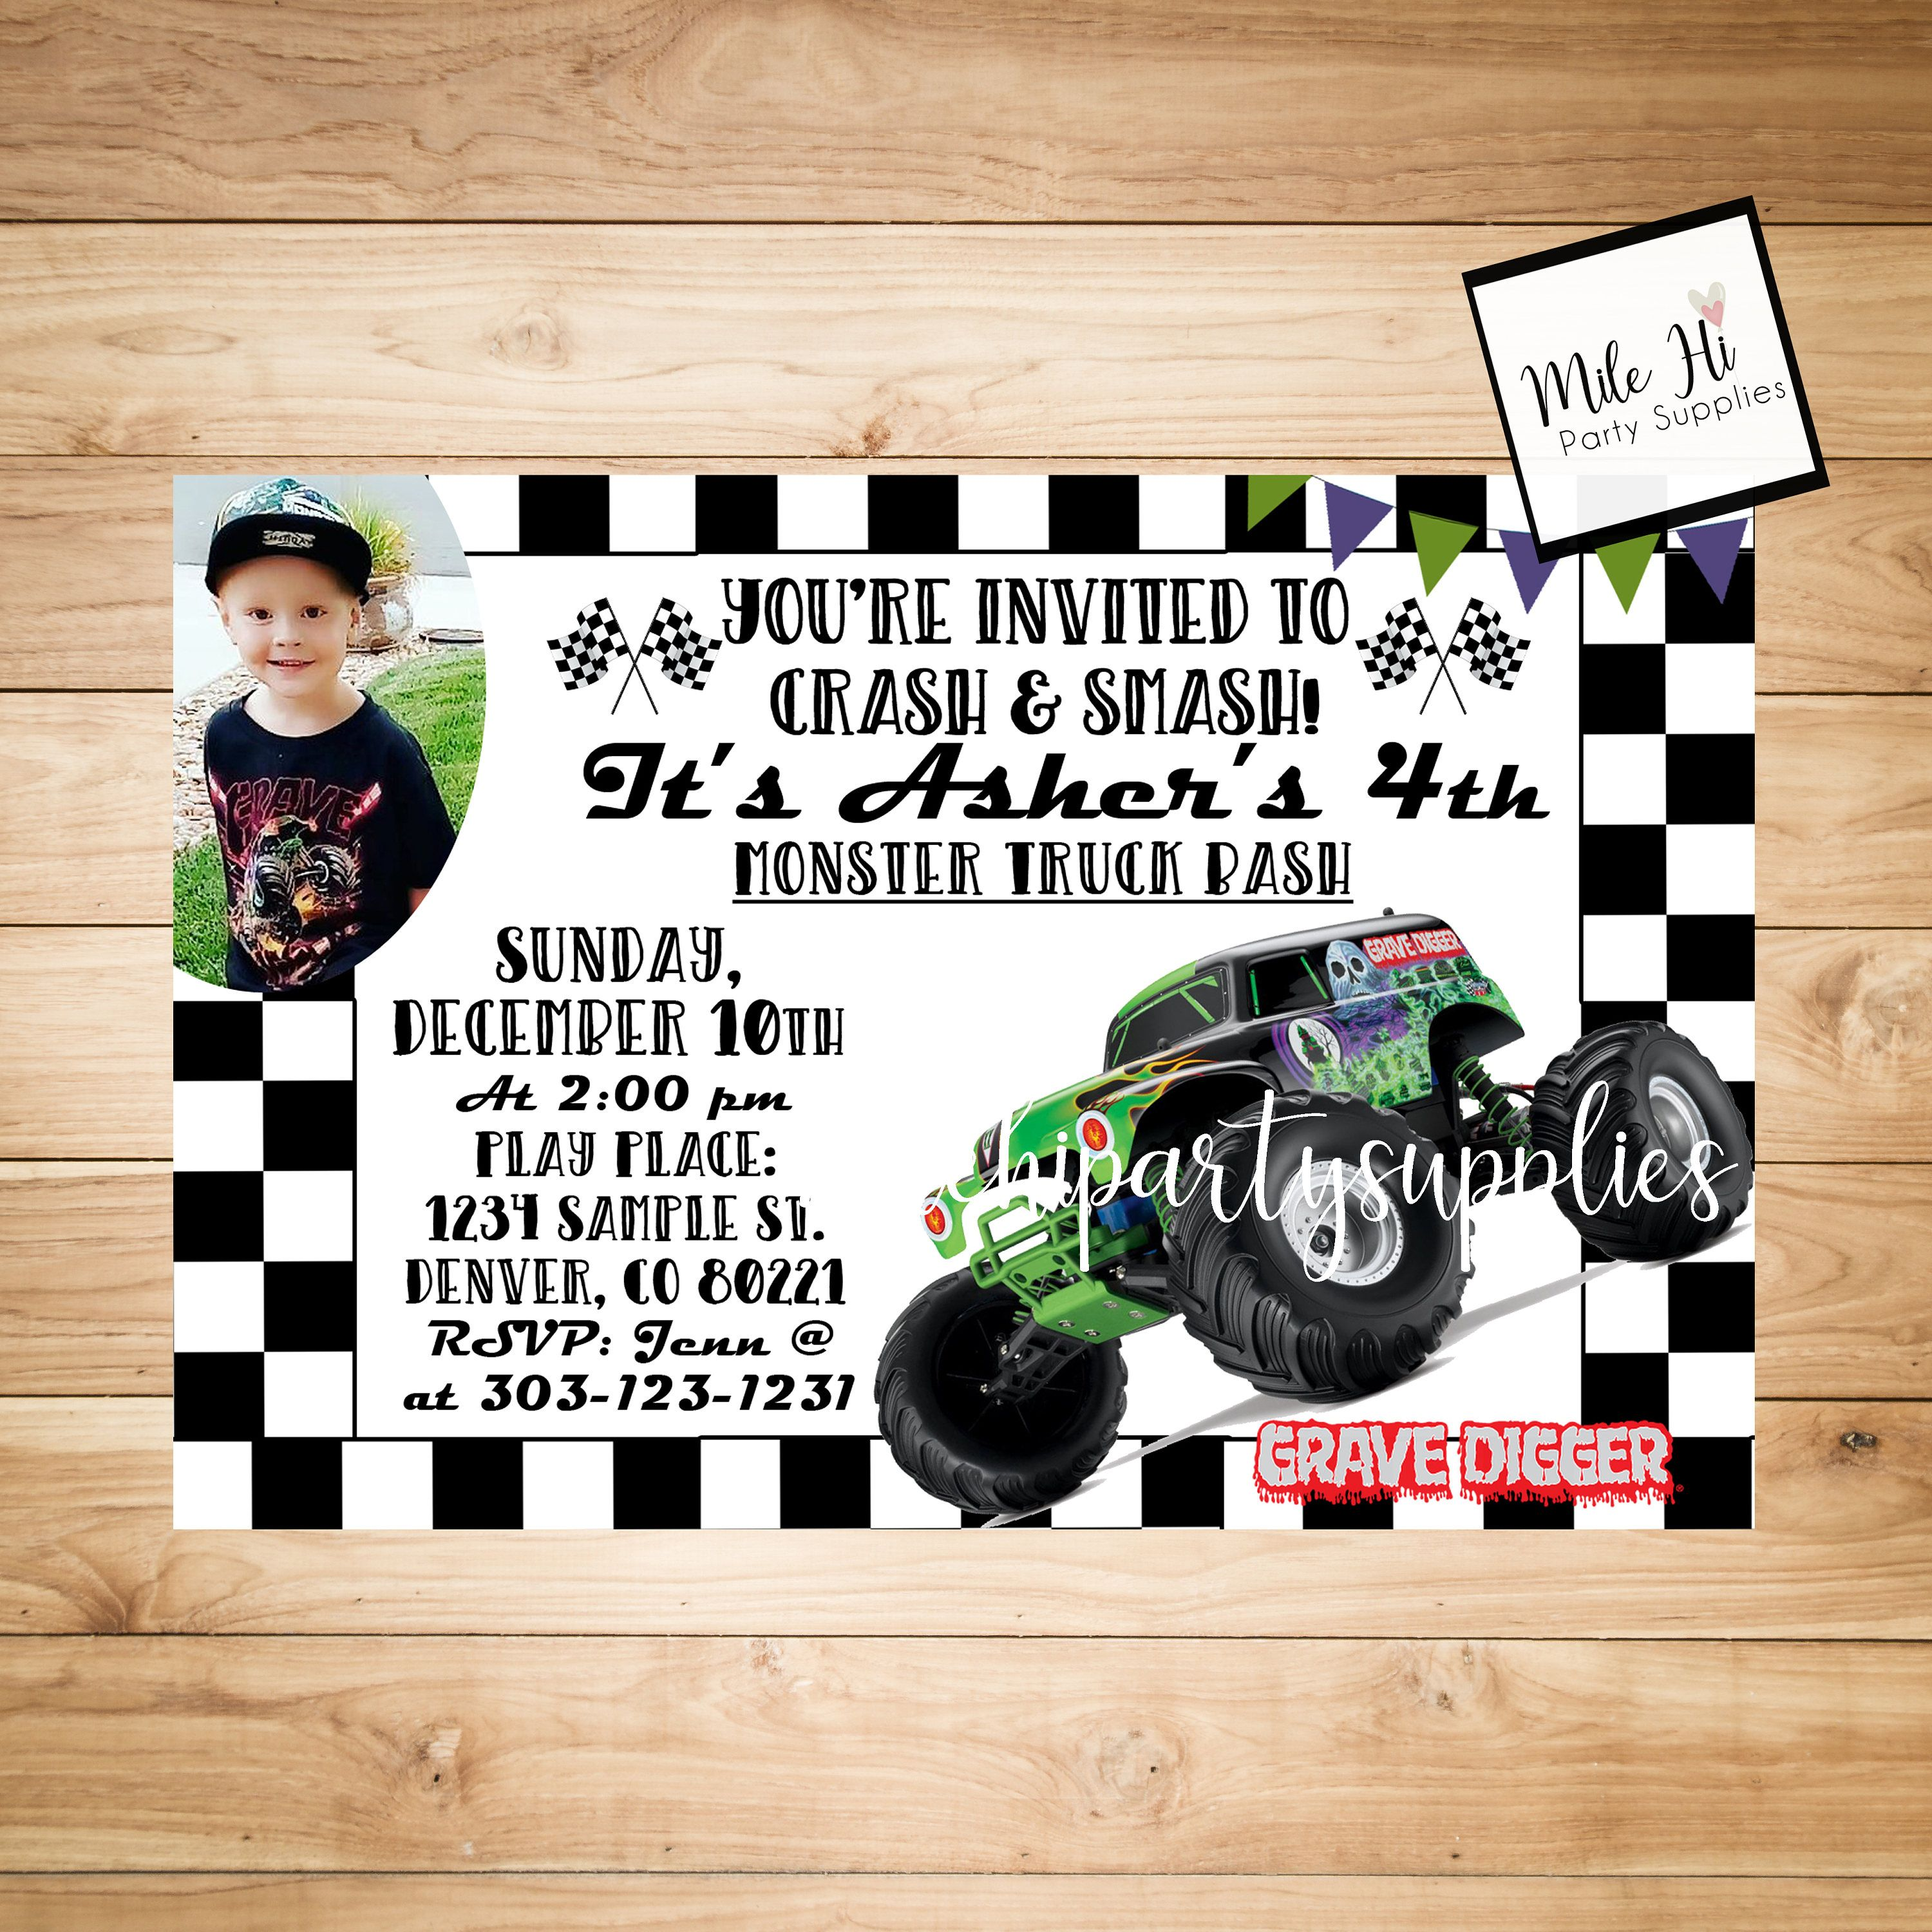 Grave digger monster jam birthday party invitation with photo by grave digger monster jam birthday party invitation with photo by milehipartysupplies on etsy filmwisefo Gallery